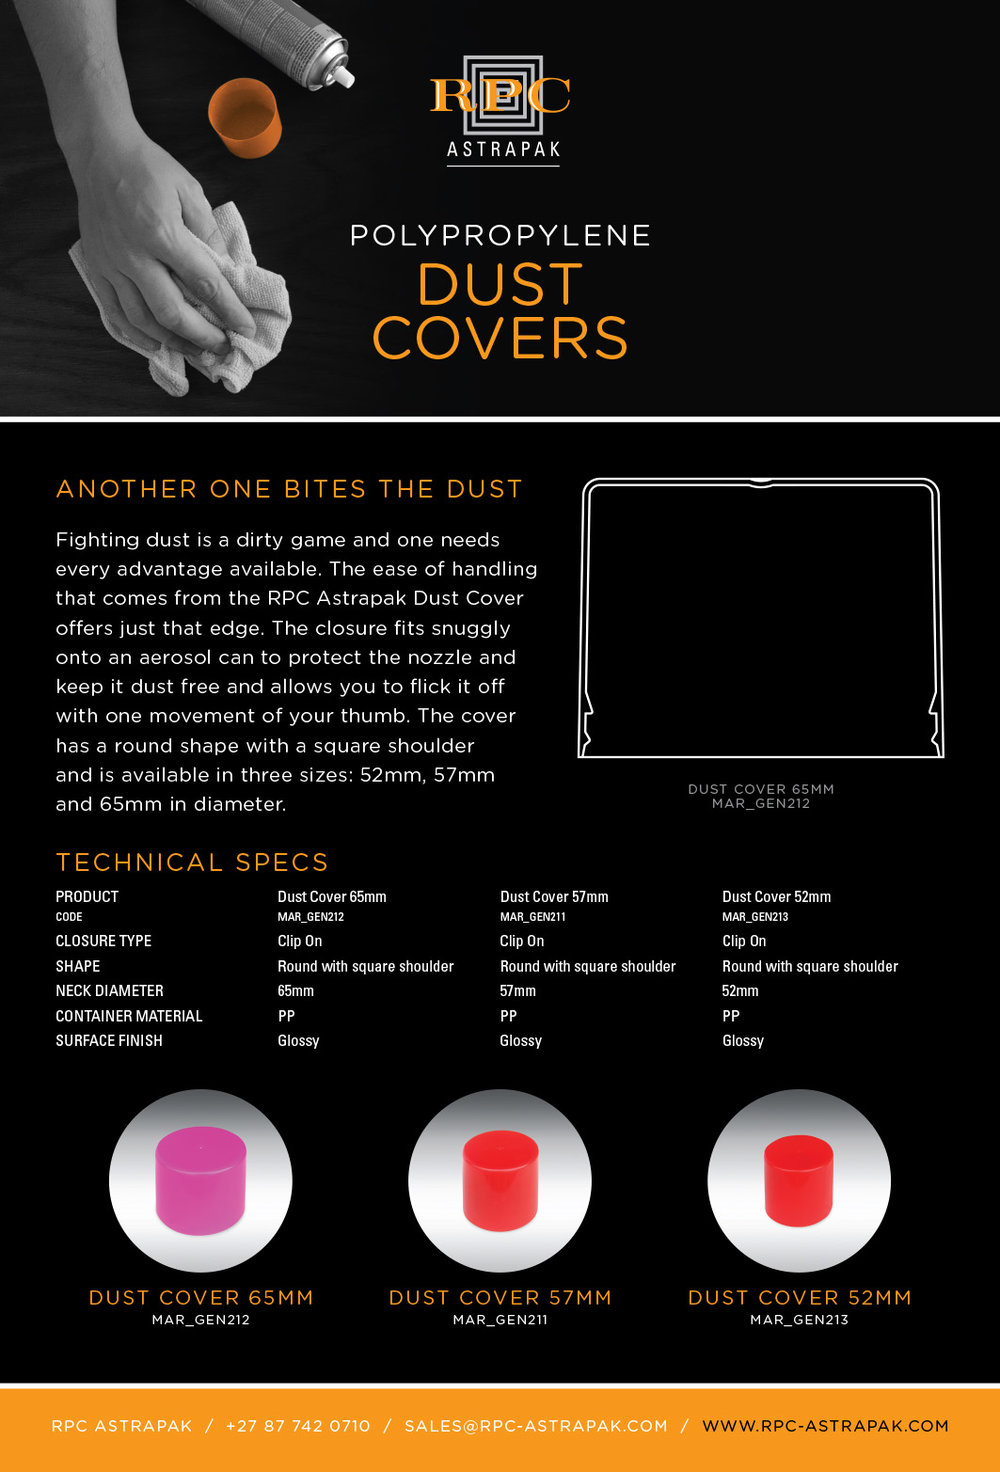 RPC AstraPak Mailer Dust Covers FINAL (type).indd